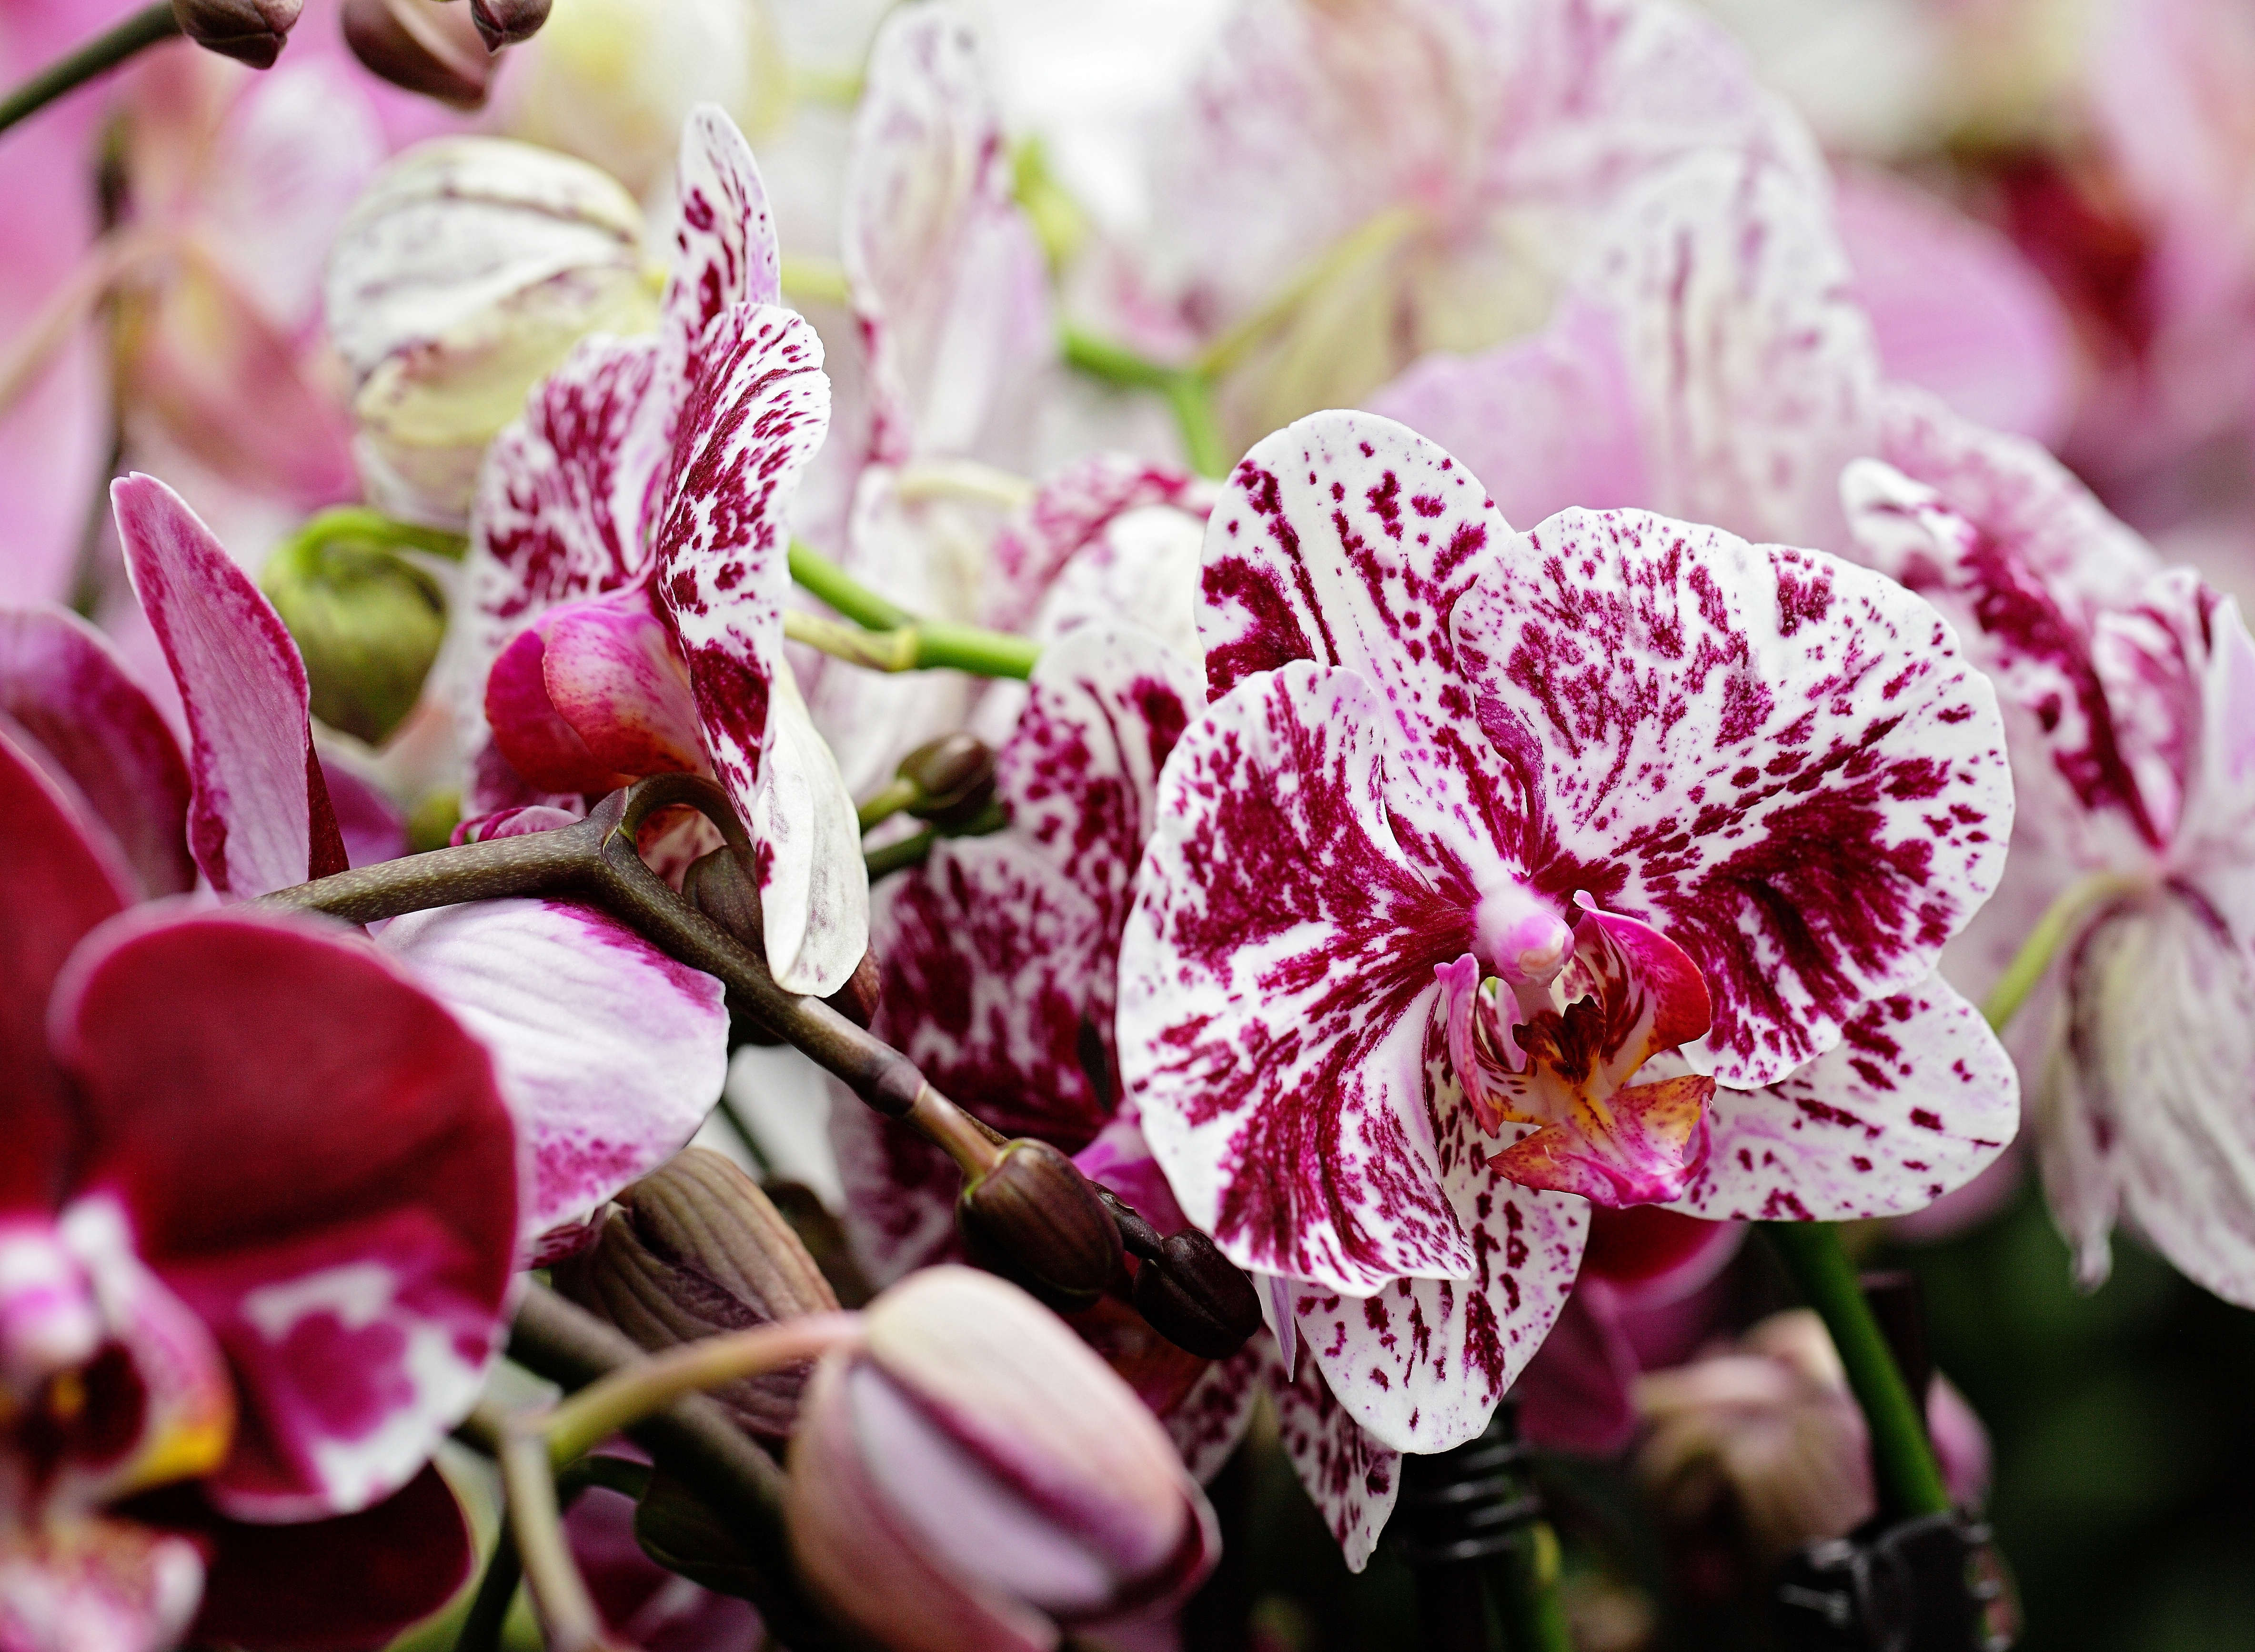 Not Great With Houseplants? 5 Reasons to Buy Phalaenopsis Orchids